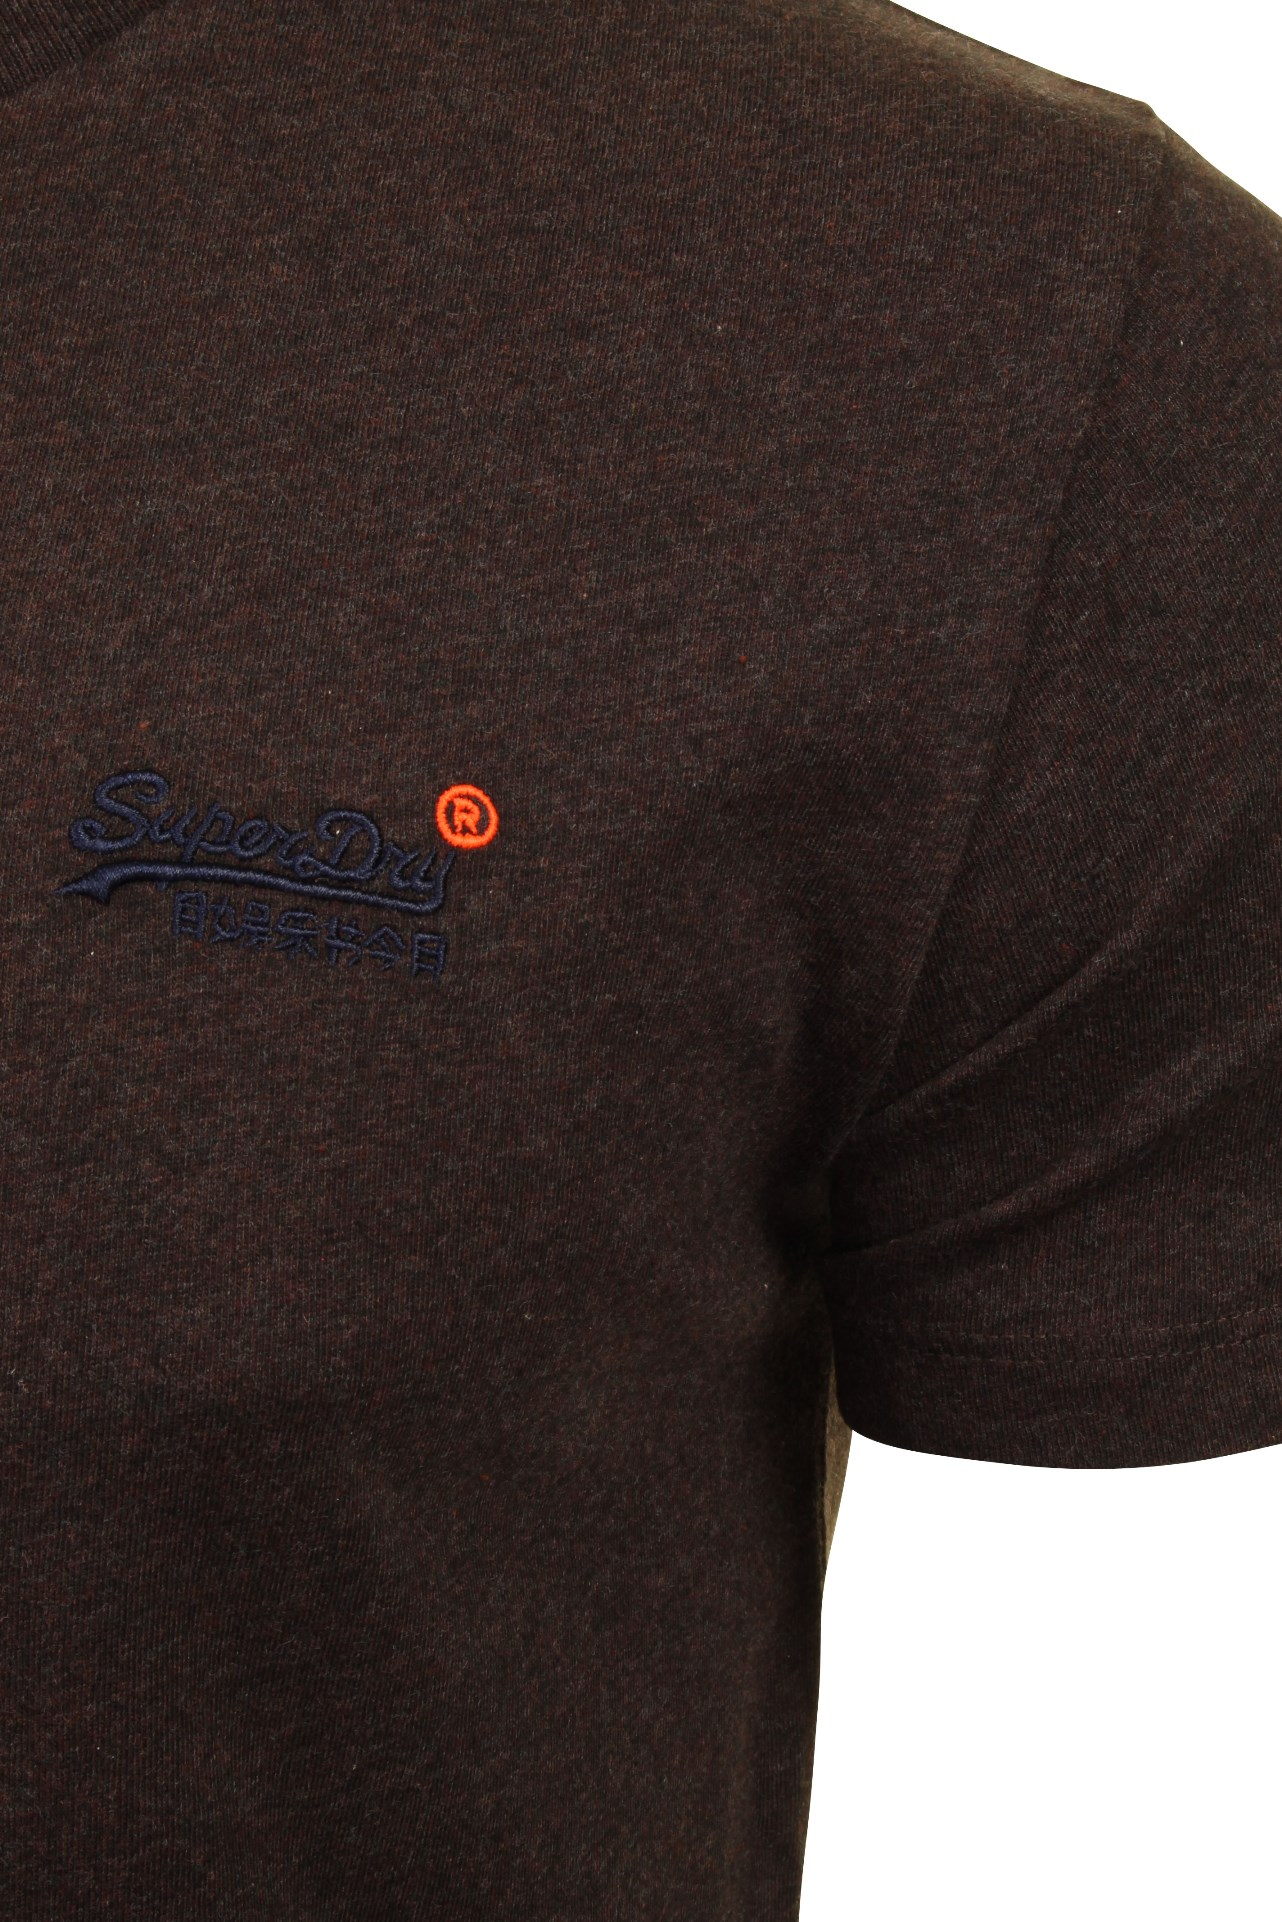 Superdry-Mens-T-Shirt-039-OL-Vintage-Embroidery-Tee-039-Short-Sleeved thumbnail 10